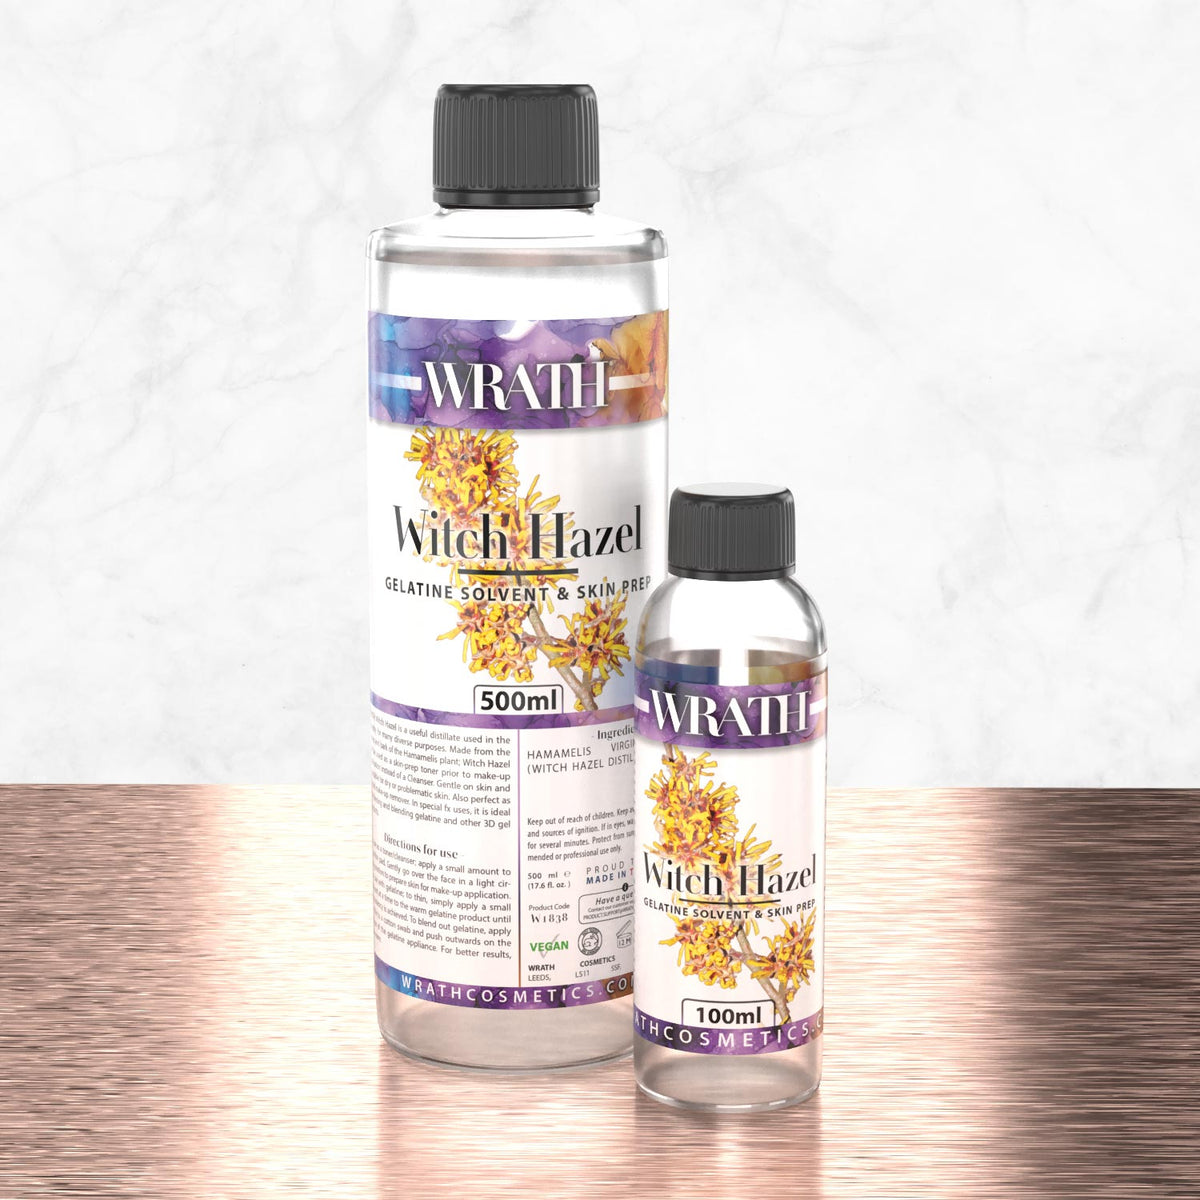 WRATH Witch Hazel - Skin Prep & Gelatine Blender